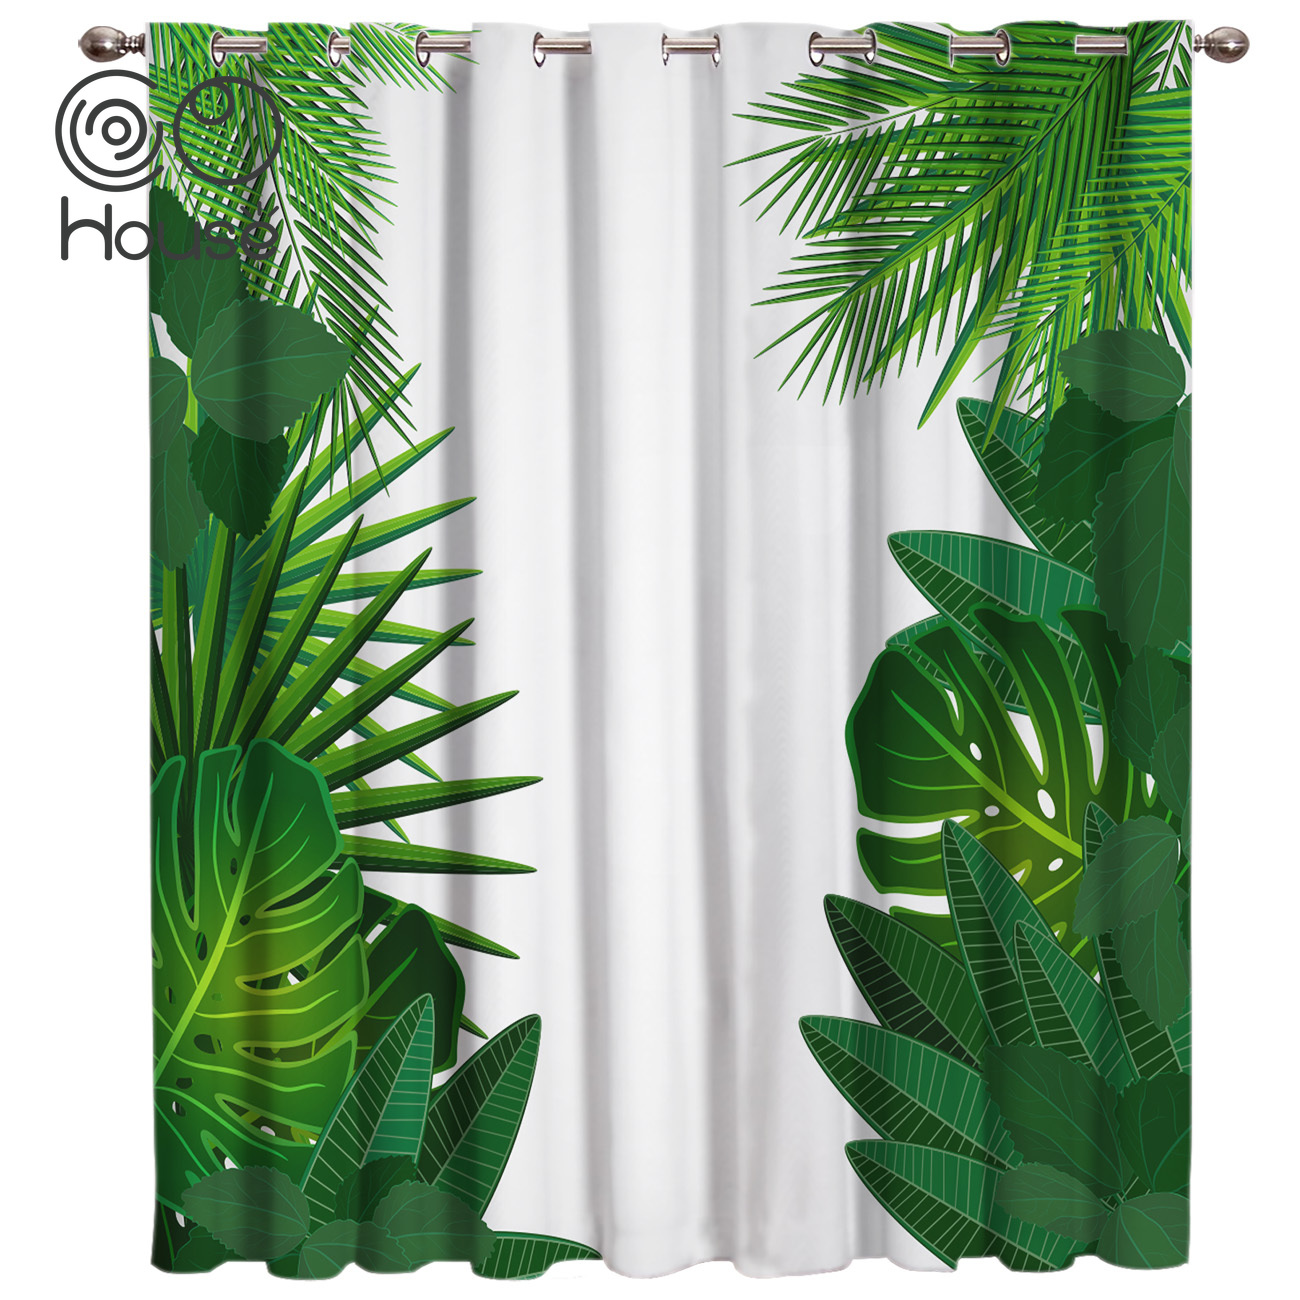 Cocohouse Tropical Leaves Plant Window